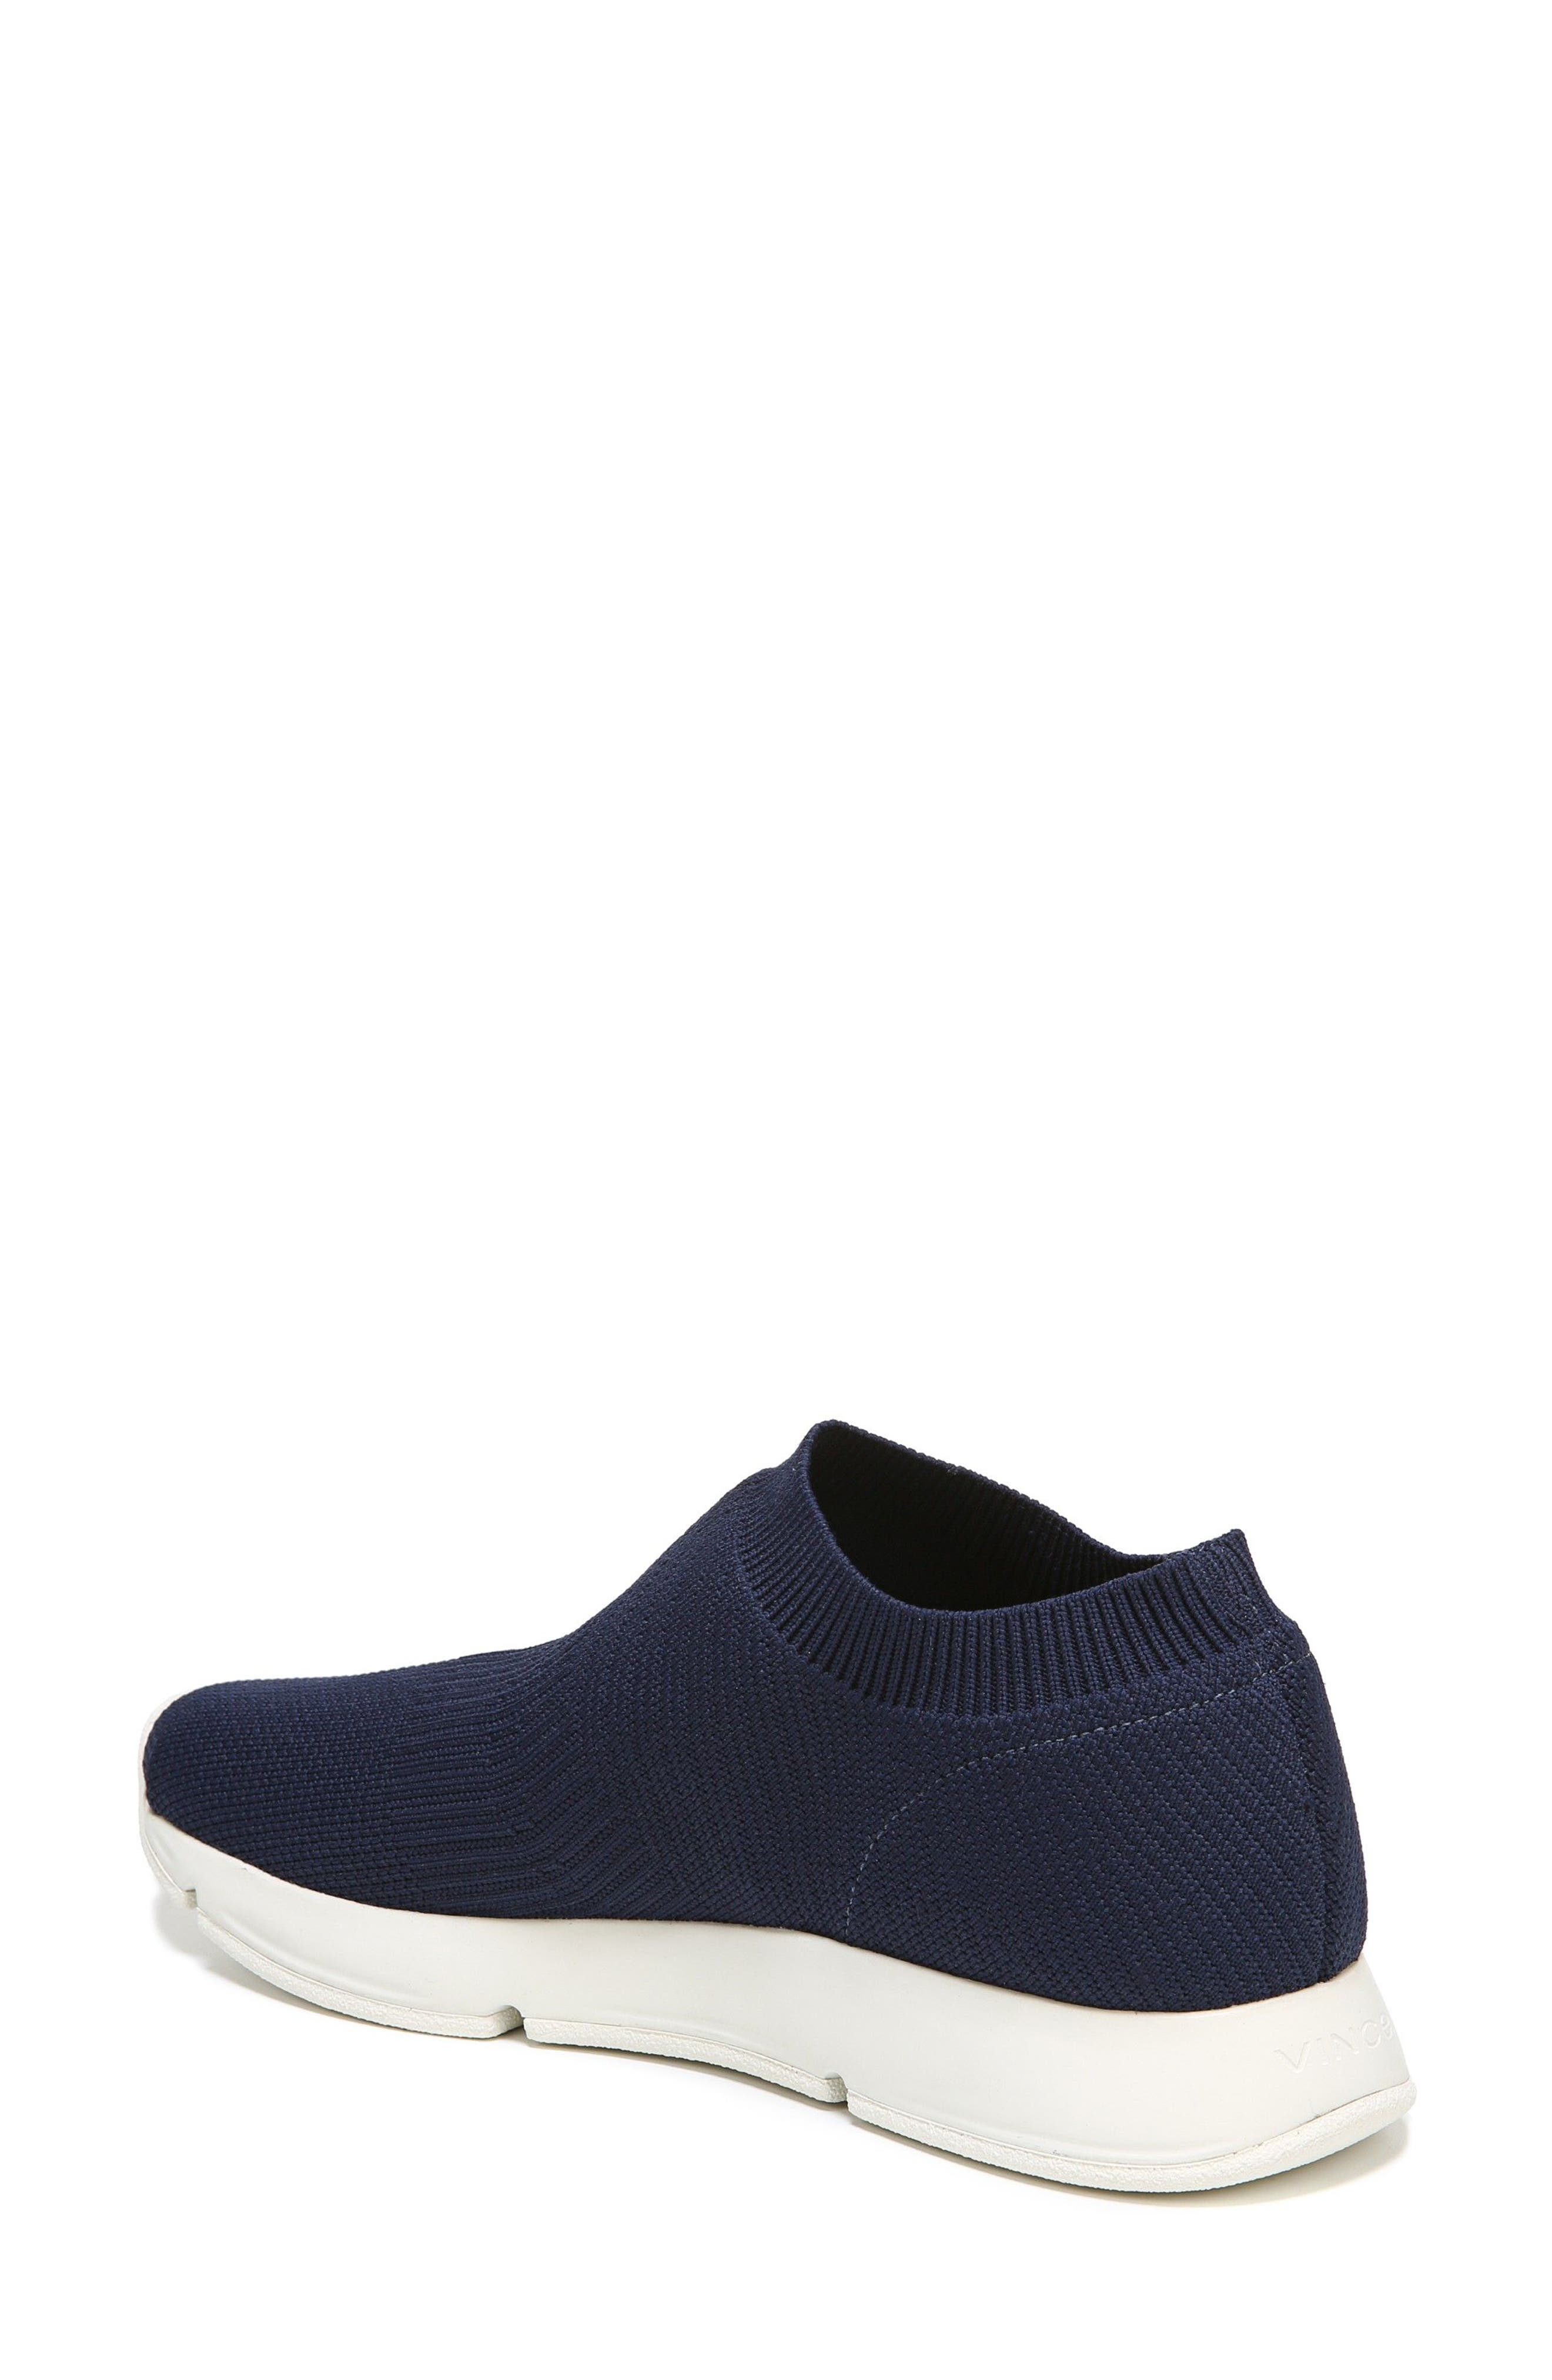 Theroux Slip-On Knit Sneaker,                             Alternate thumbnail 6, color,